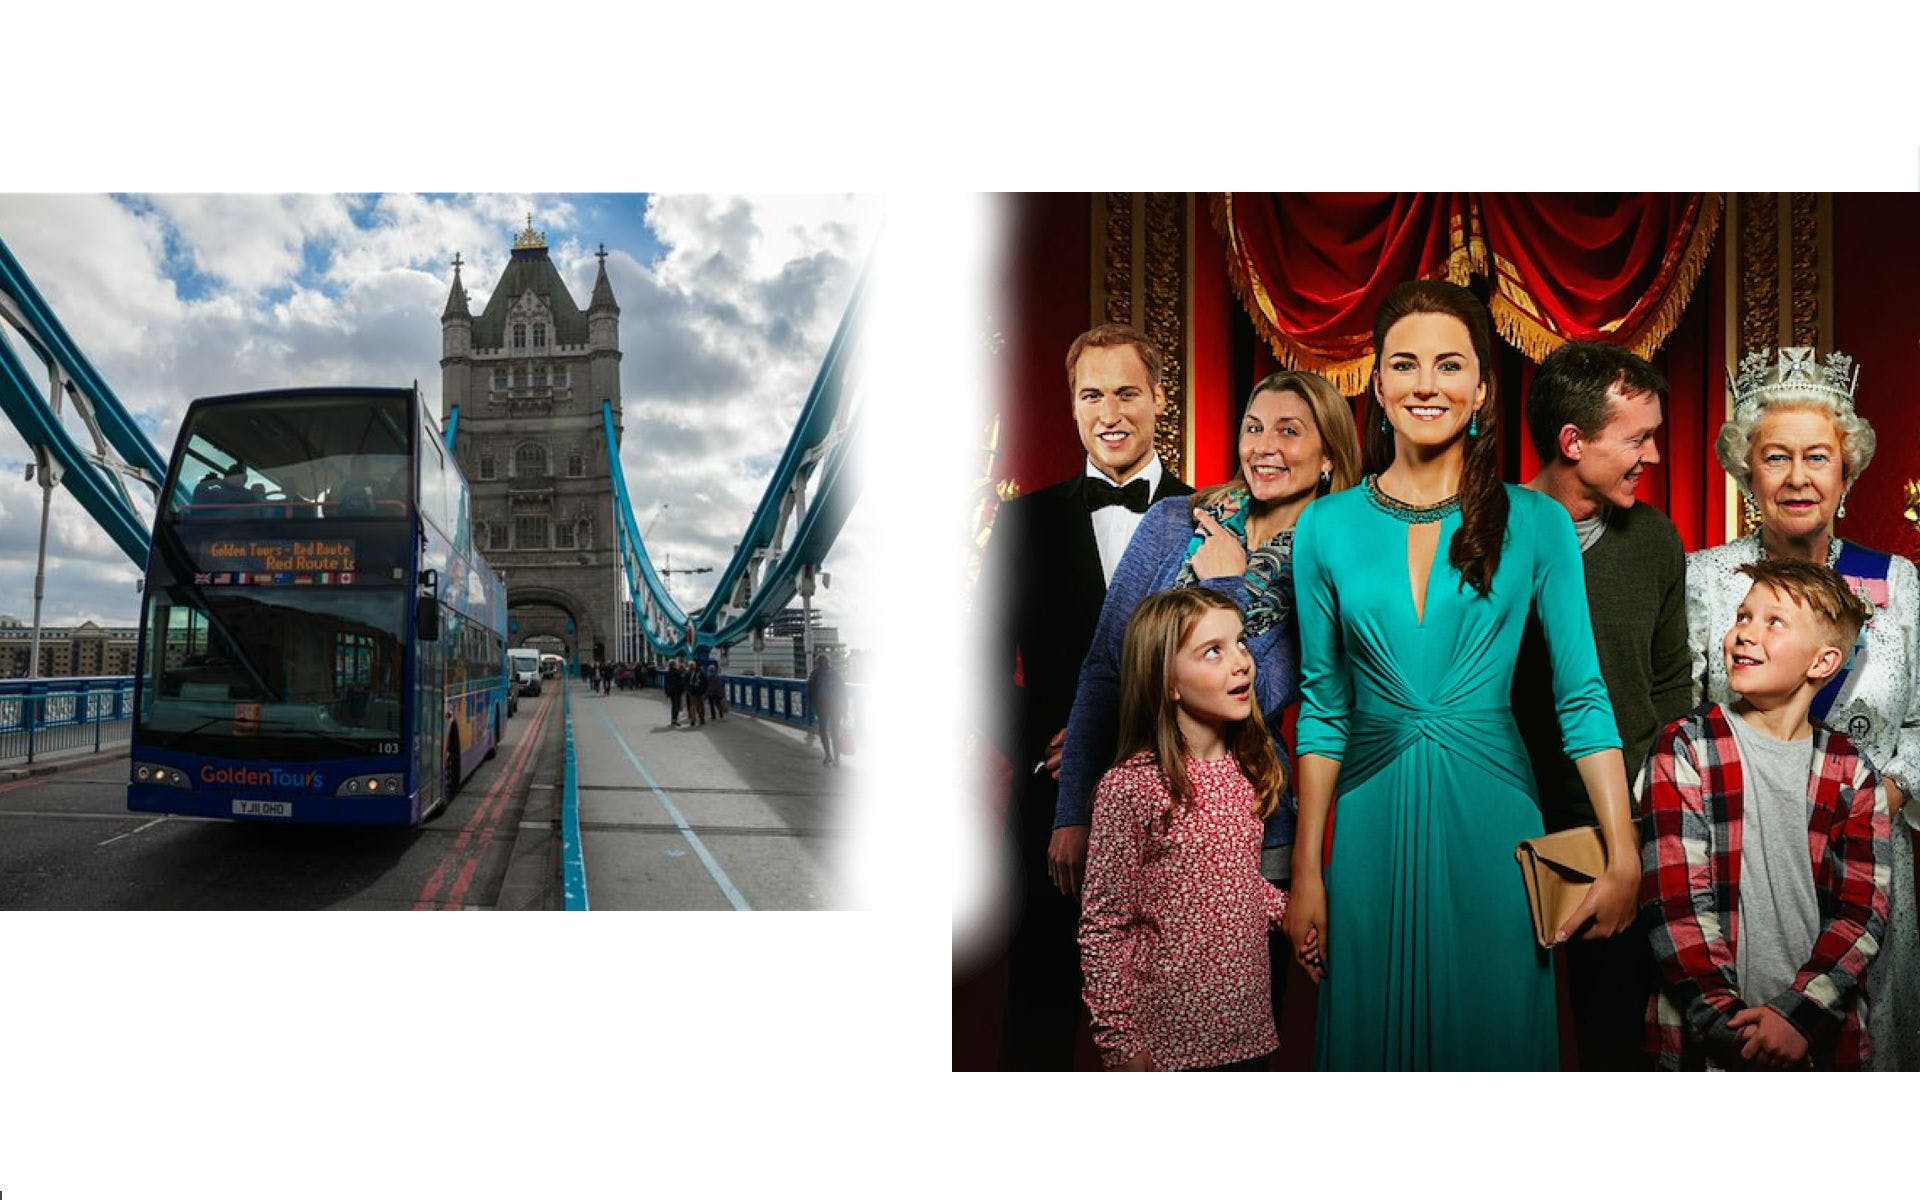 24-hour hop-on hop-off London bus tour with Madame Tussauds